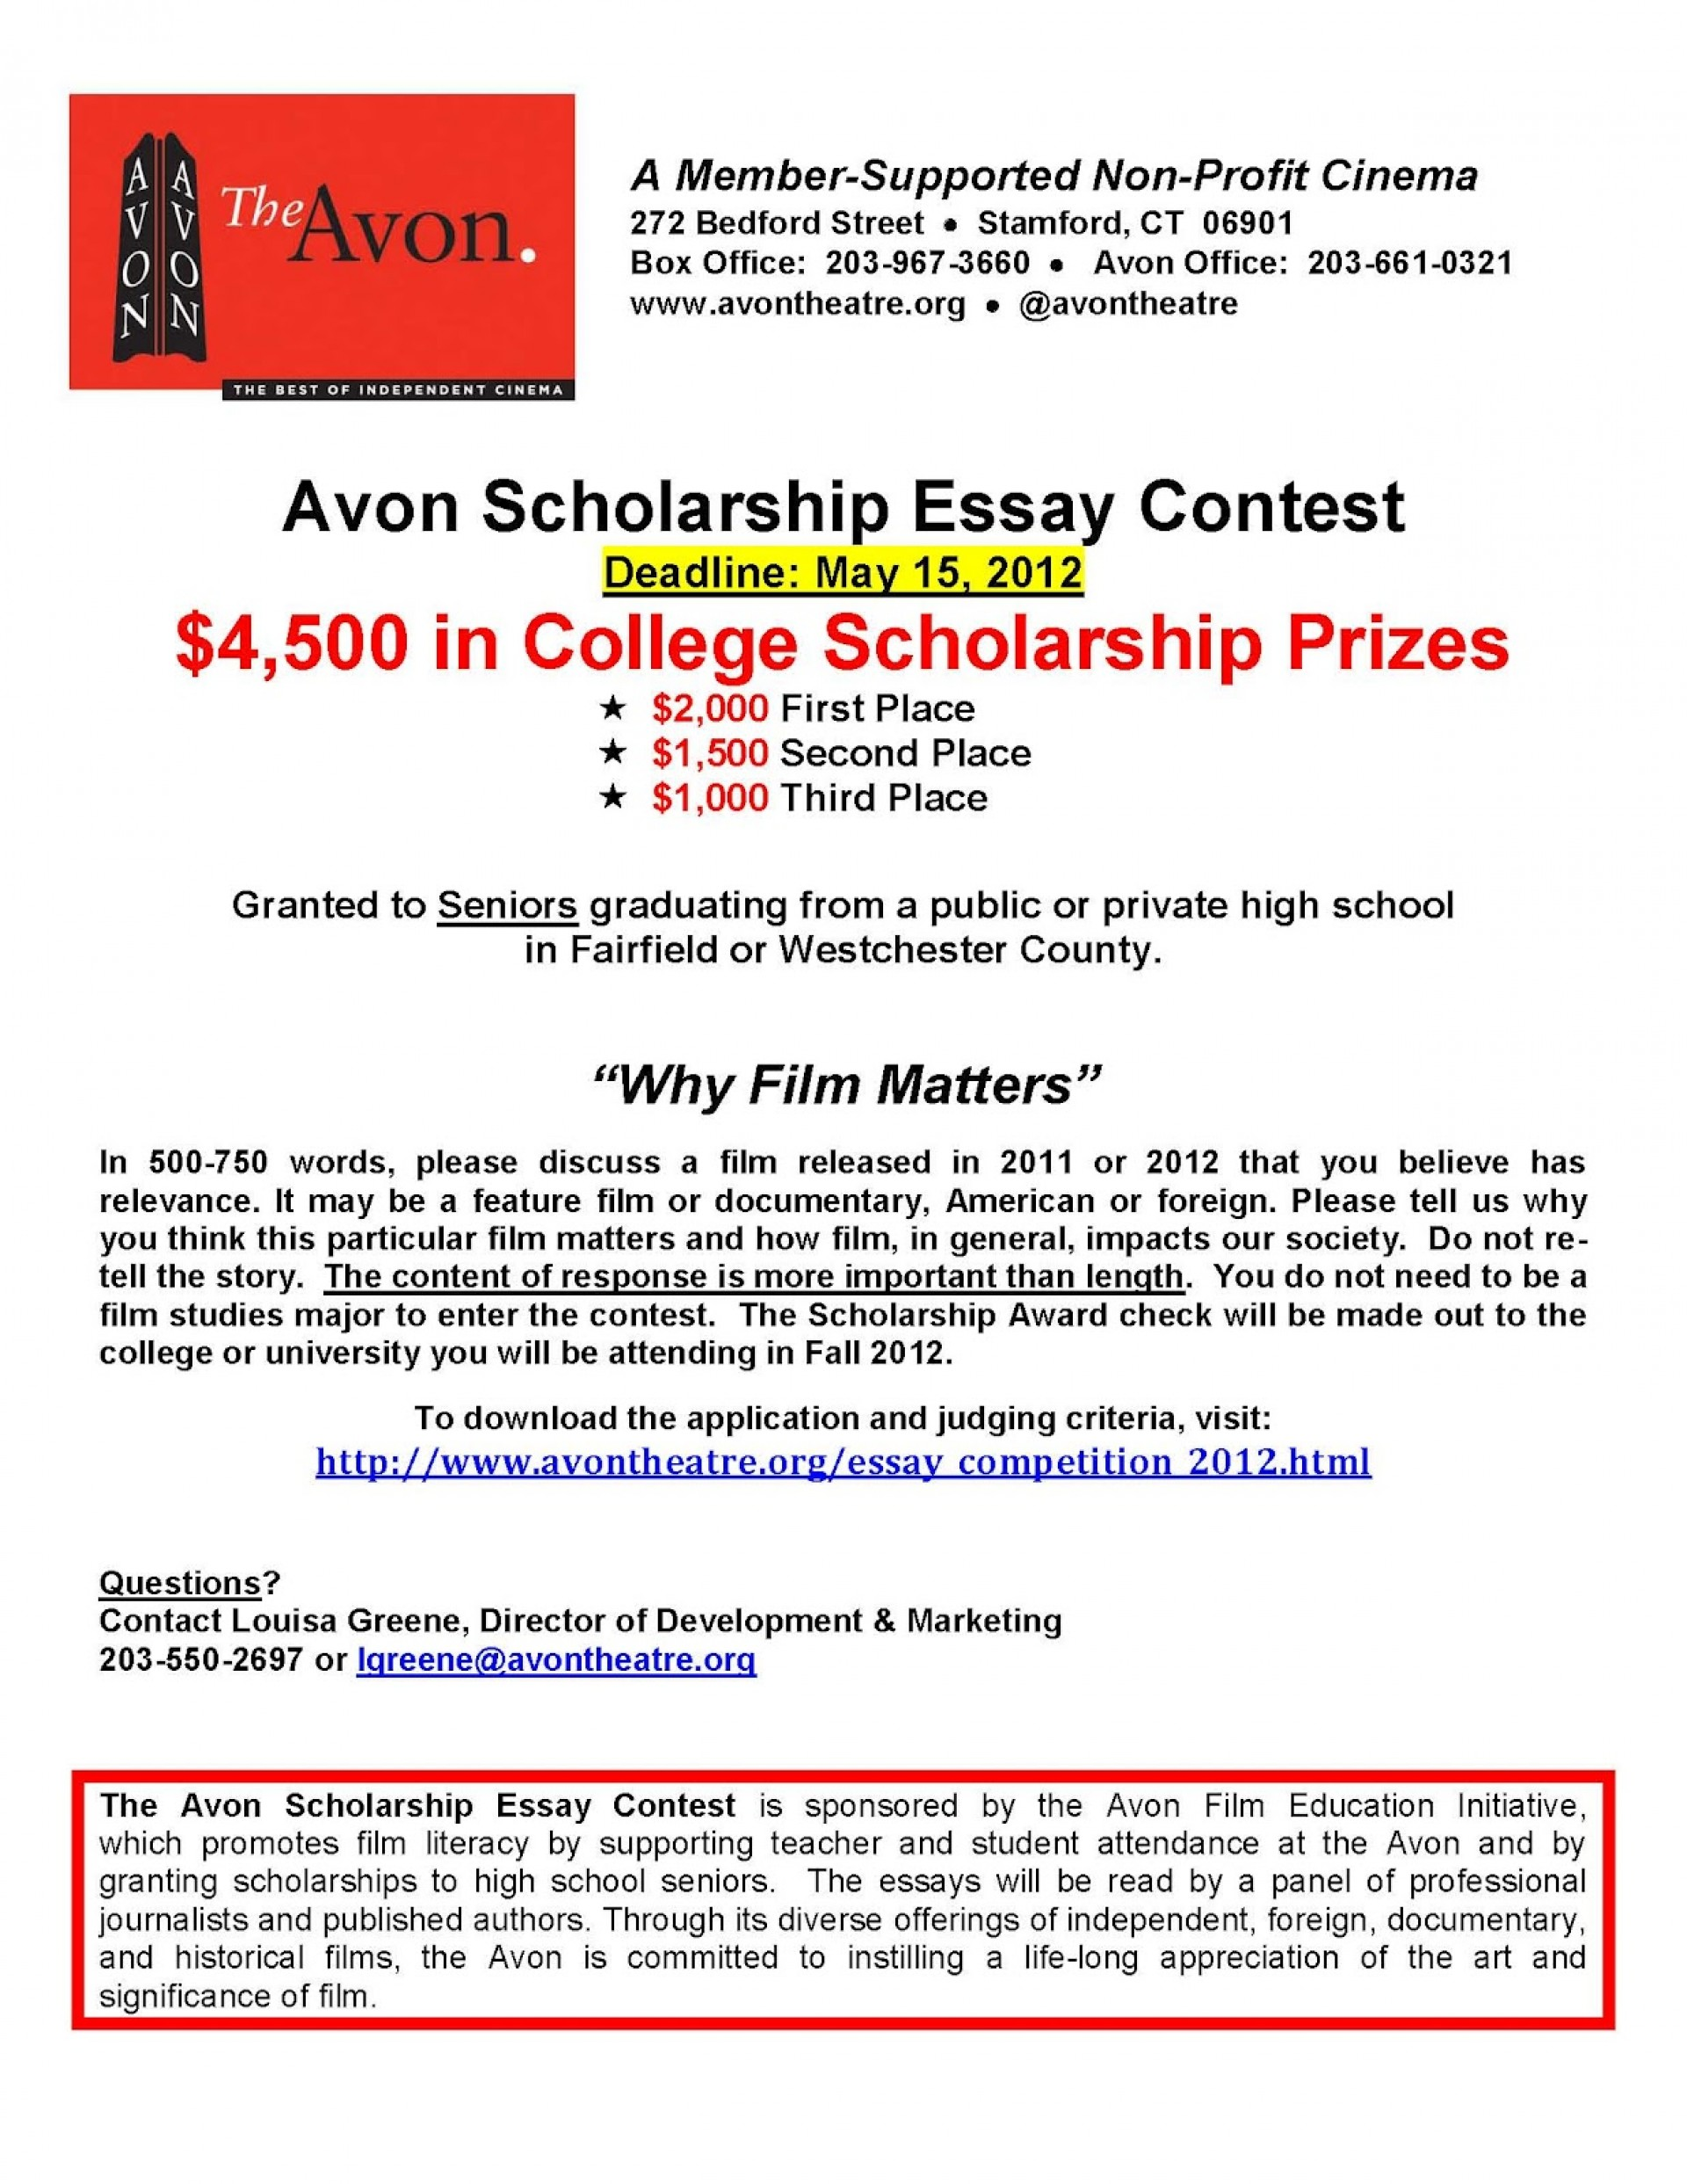 003 No Essay College Scholarship Prowler Free Scholarships For High School Seniors Avonscholarshipessaycontest2012 In Texas California Class Of Short Unbelievable With Without Essays Required 2017 1920